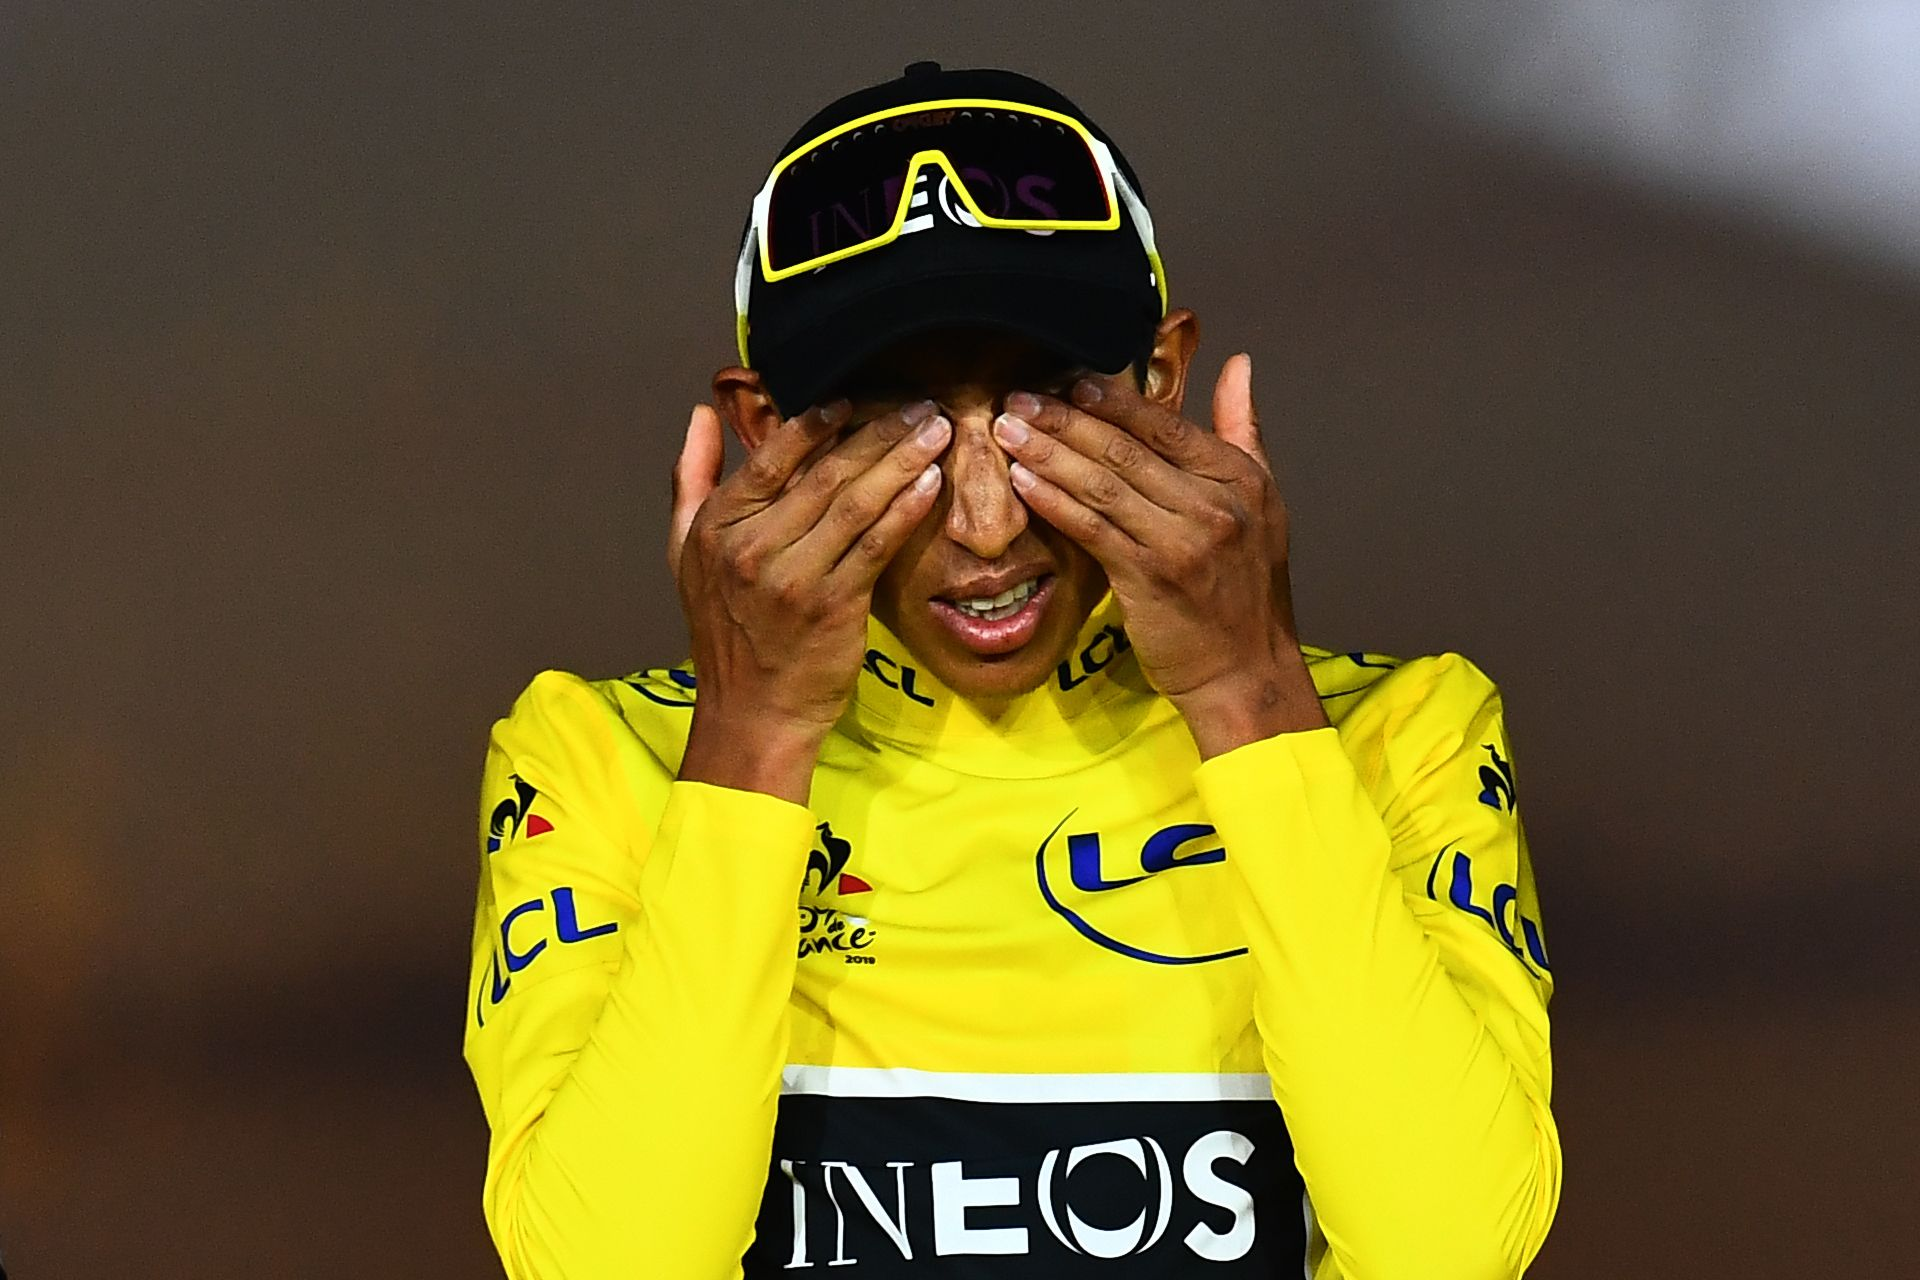 Colombia's Egan Bernal wipes his eyes celebrates his overall leader's yellow jersey on the podium of the 21st and last stage of the 106th edition of the Tour de France cycling race between Rambouillet and Paris Champs-Elysees, in Paris on July 28, 2019. (Photo by Marco Bertorello / AFP)